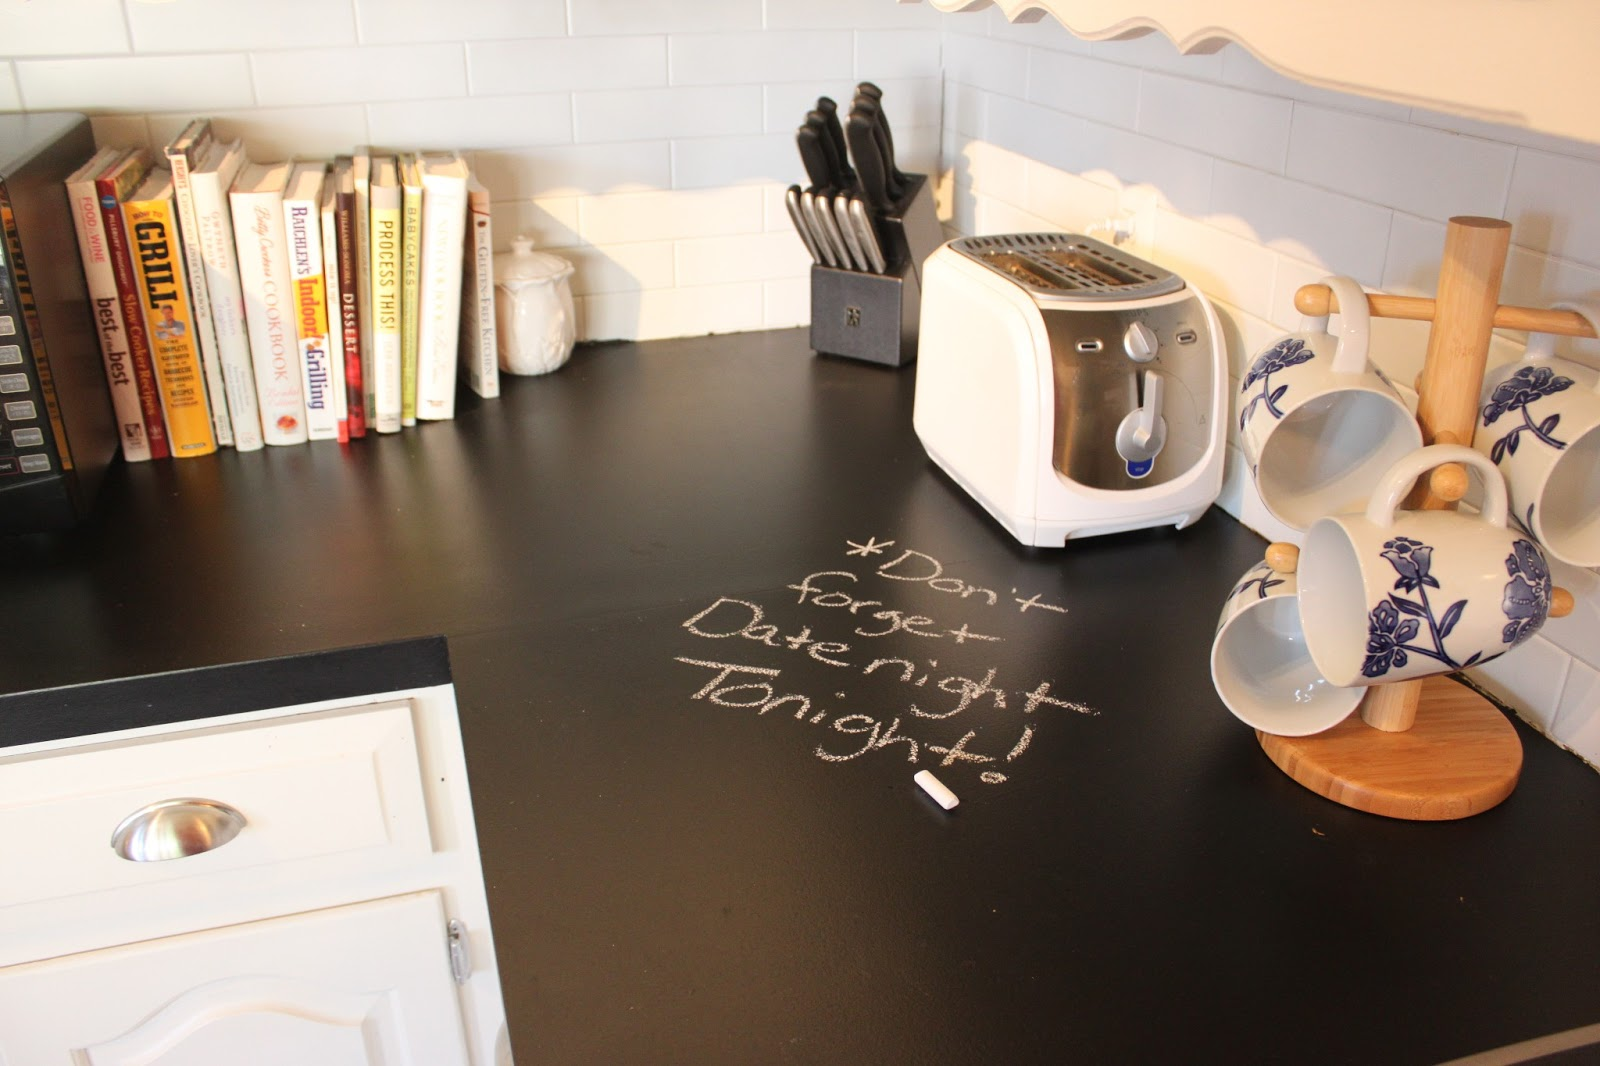 march orchard chalkboard countertops update. Black Bedroom Furniture Sets. Home Design Ideas